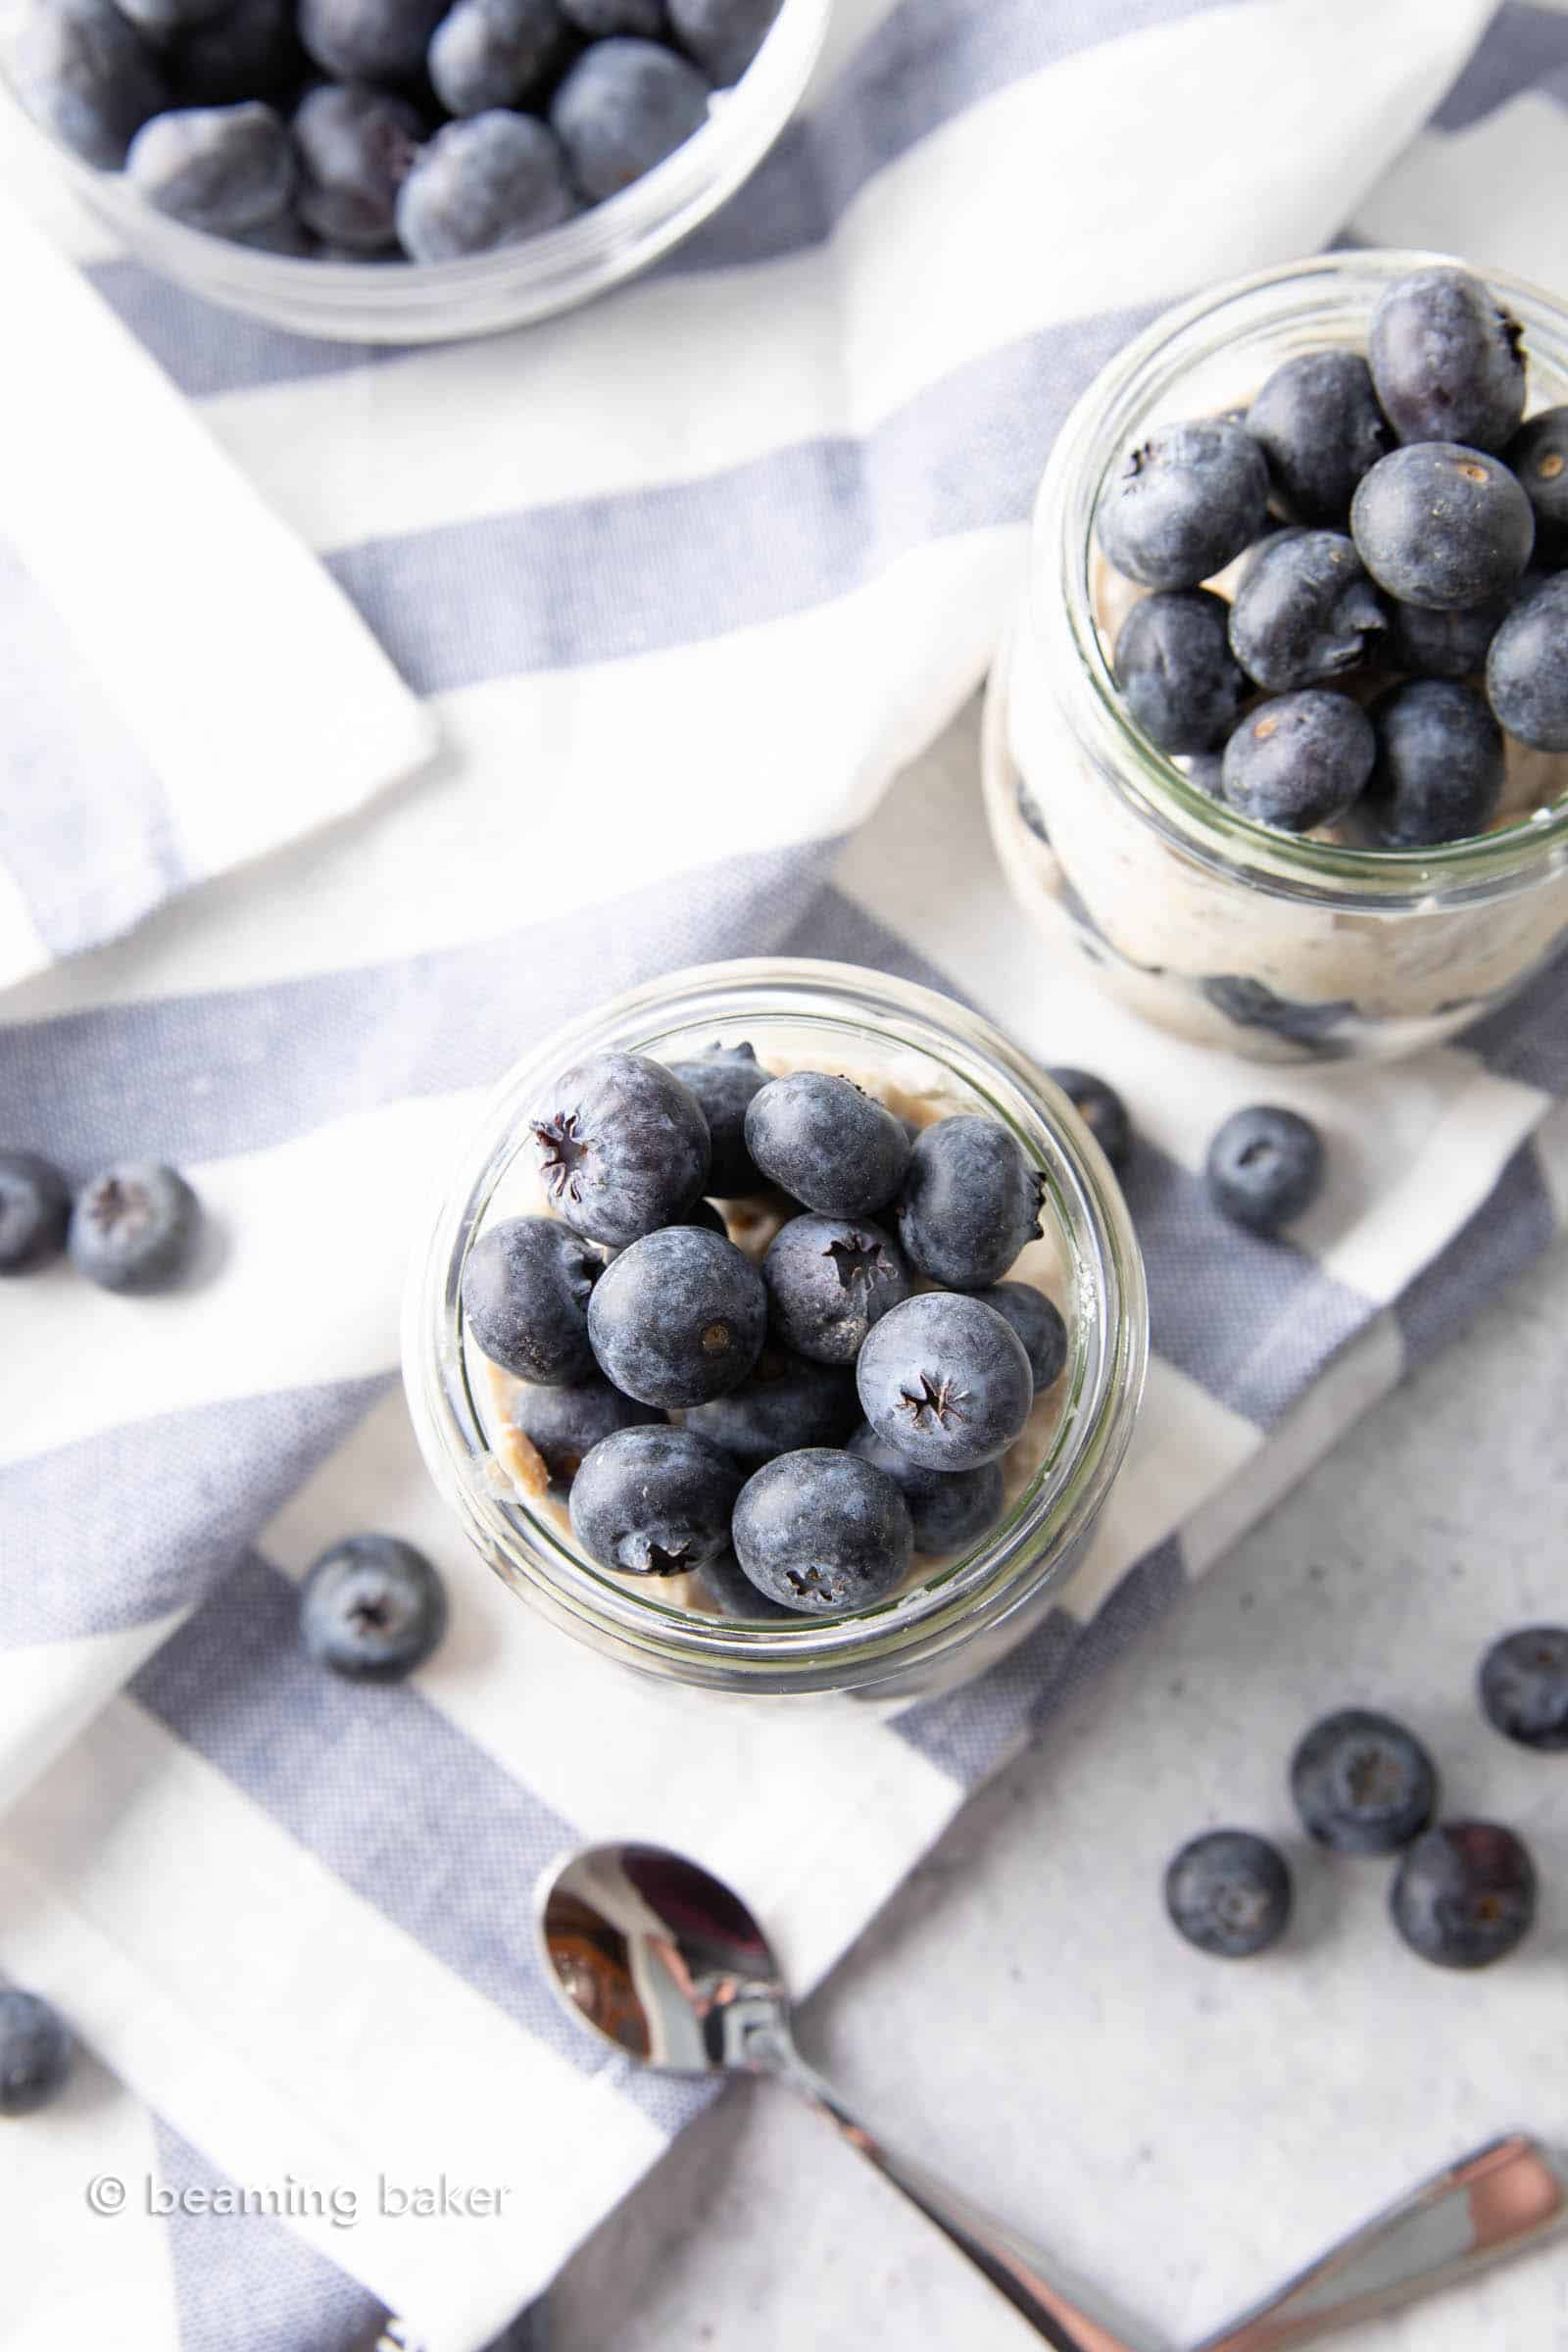 Healthy Overnight Oats with Almond Milk and Blueberries: learn how to make overnight oats with almond milk! Quick & easy almond milk breakfast in a jar—the best overnight oats with almond milk. #OvernightOats #AlmondMilk #Breakfast #Healthy | Recipe at BeamingBaker.com